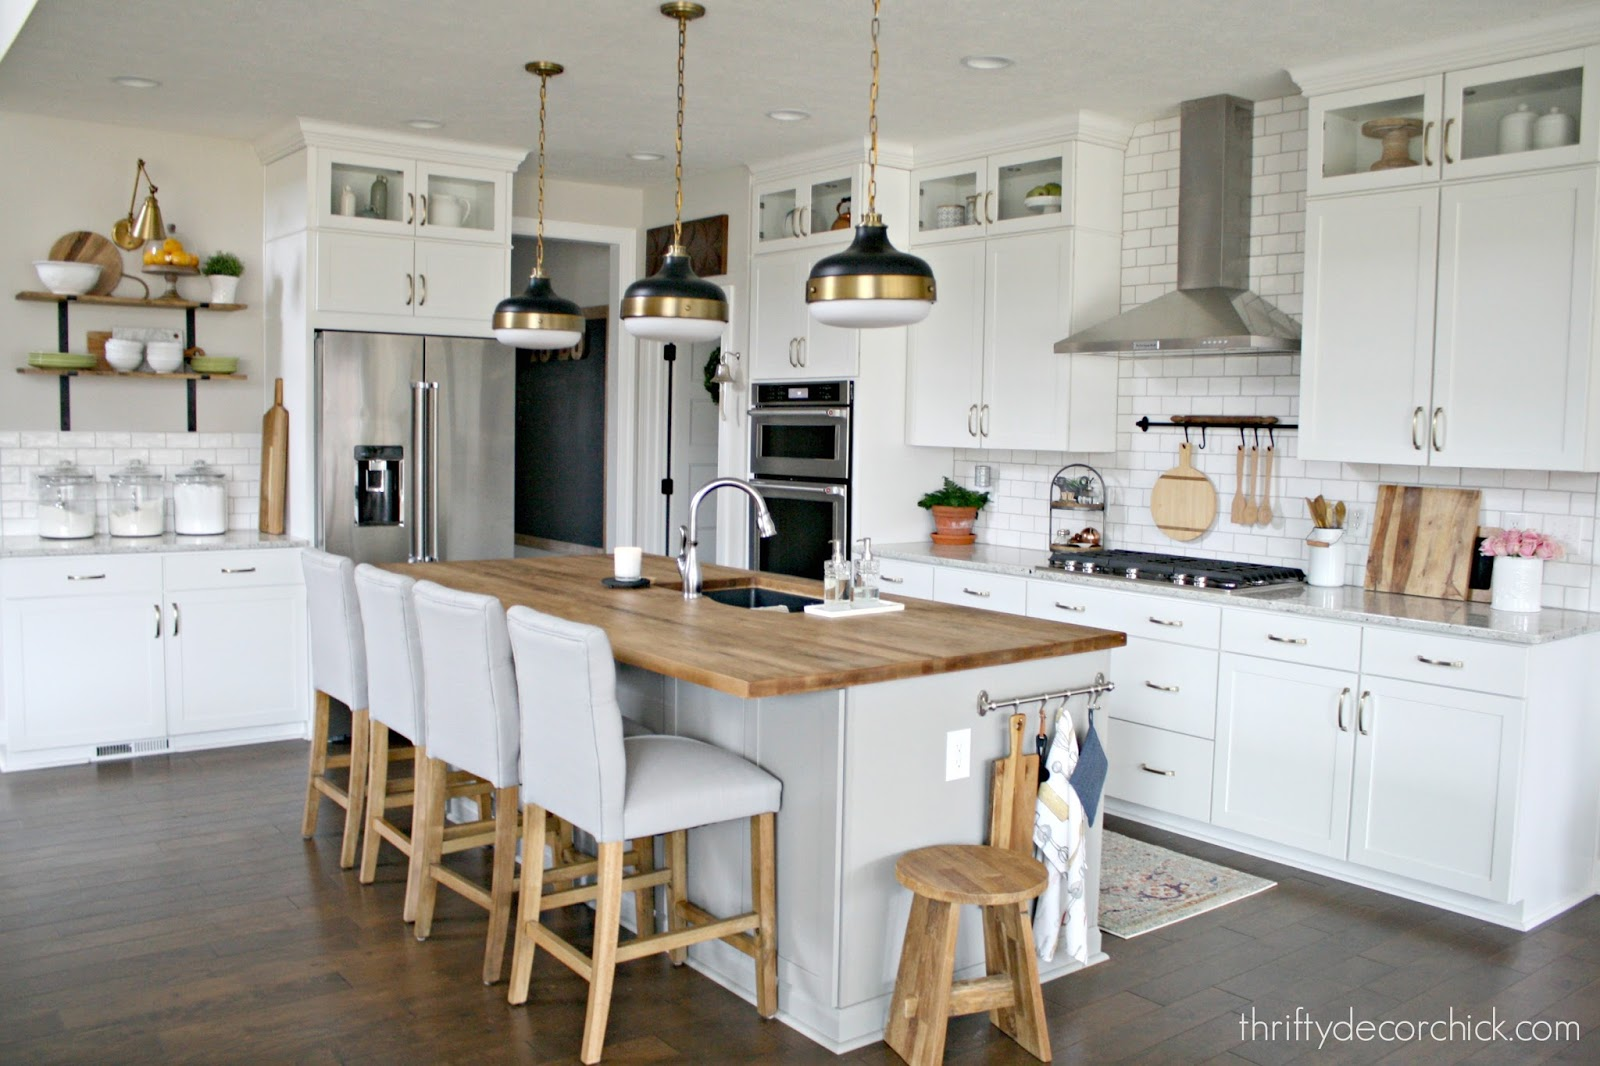 A Tour Of Our New Kitchen From Thrifty Decor Chick